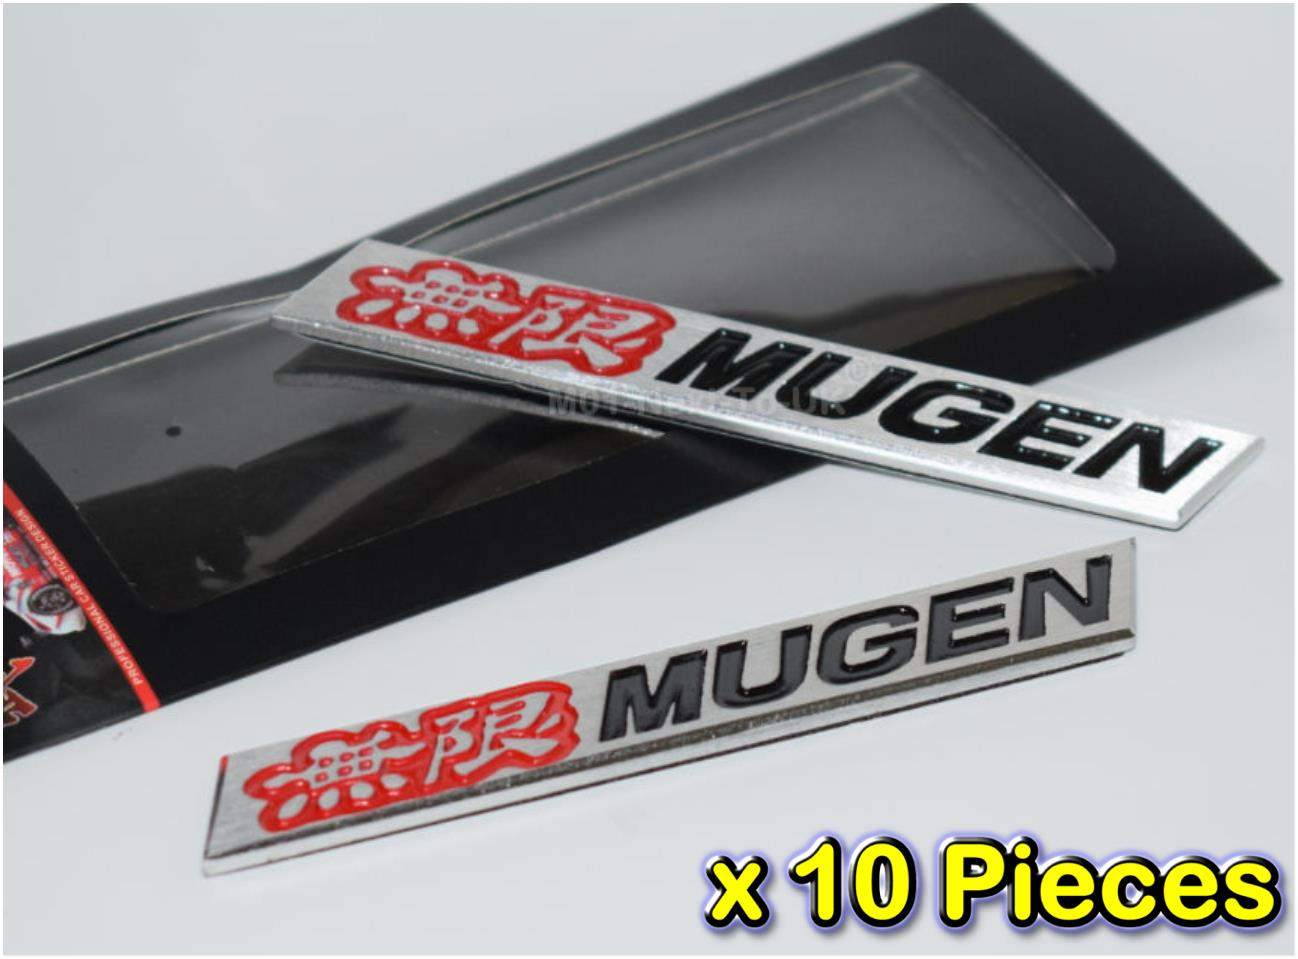 [10 PIECES][2274RB#34] MUGEN Red Black Badge Emblem HQ Aluminium Metal